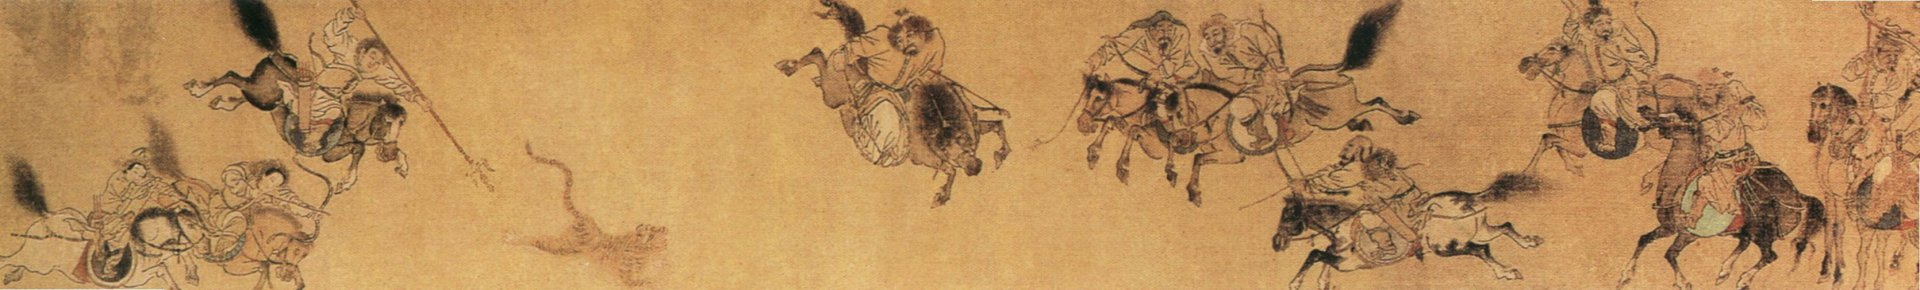 088_1c0242a.Ancient_Chinese_Painting.jpg